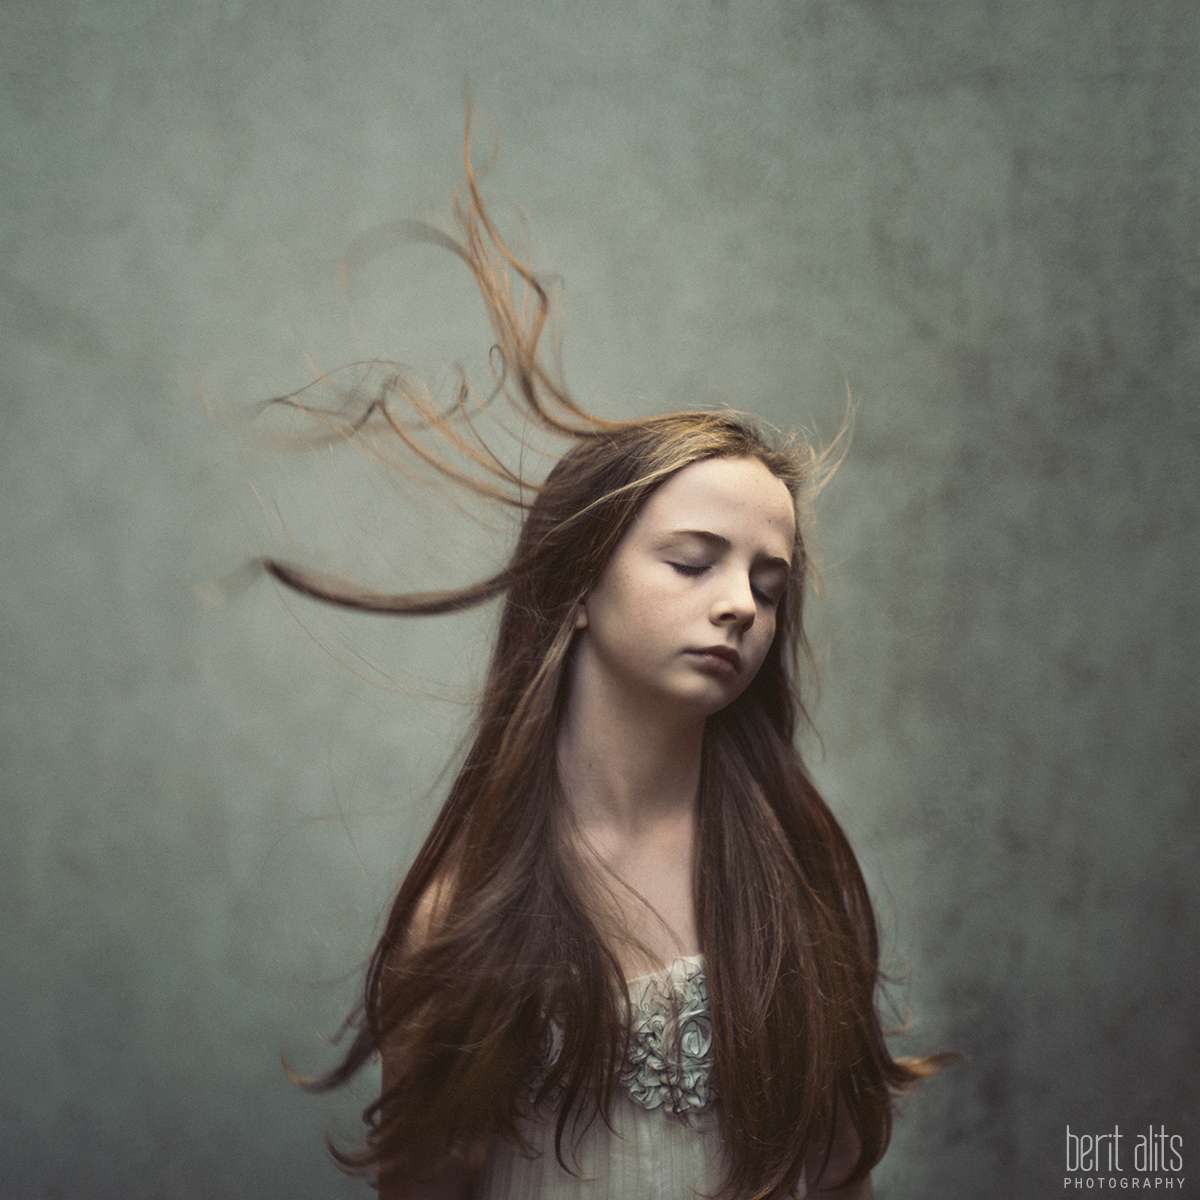 01_Standing_With_The_Wind_creative_portrait_artistic_young_girl_clonmel_tipperary_ireland_photography_photographer_family_different_windy_long_hair_dreamy_nikon_d800_50mm_f1.4_square_format_natural_light_pose_posing